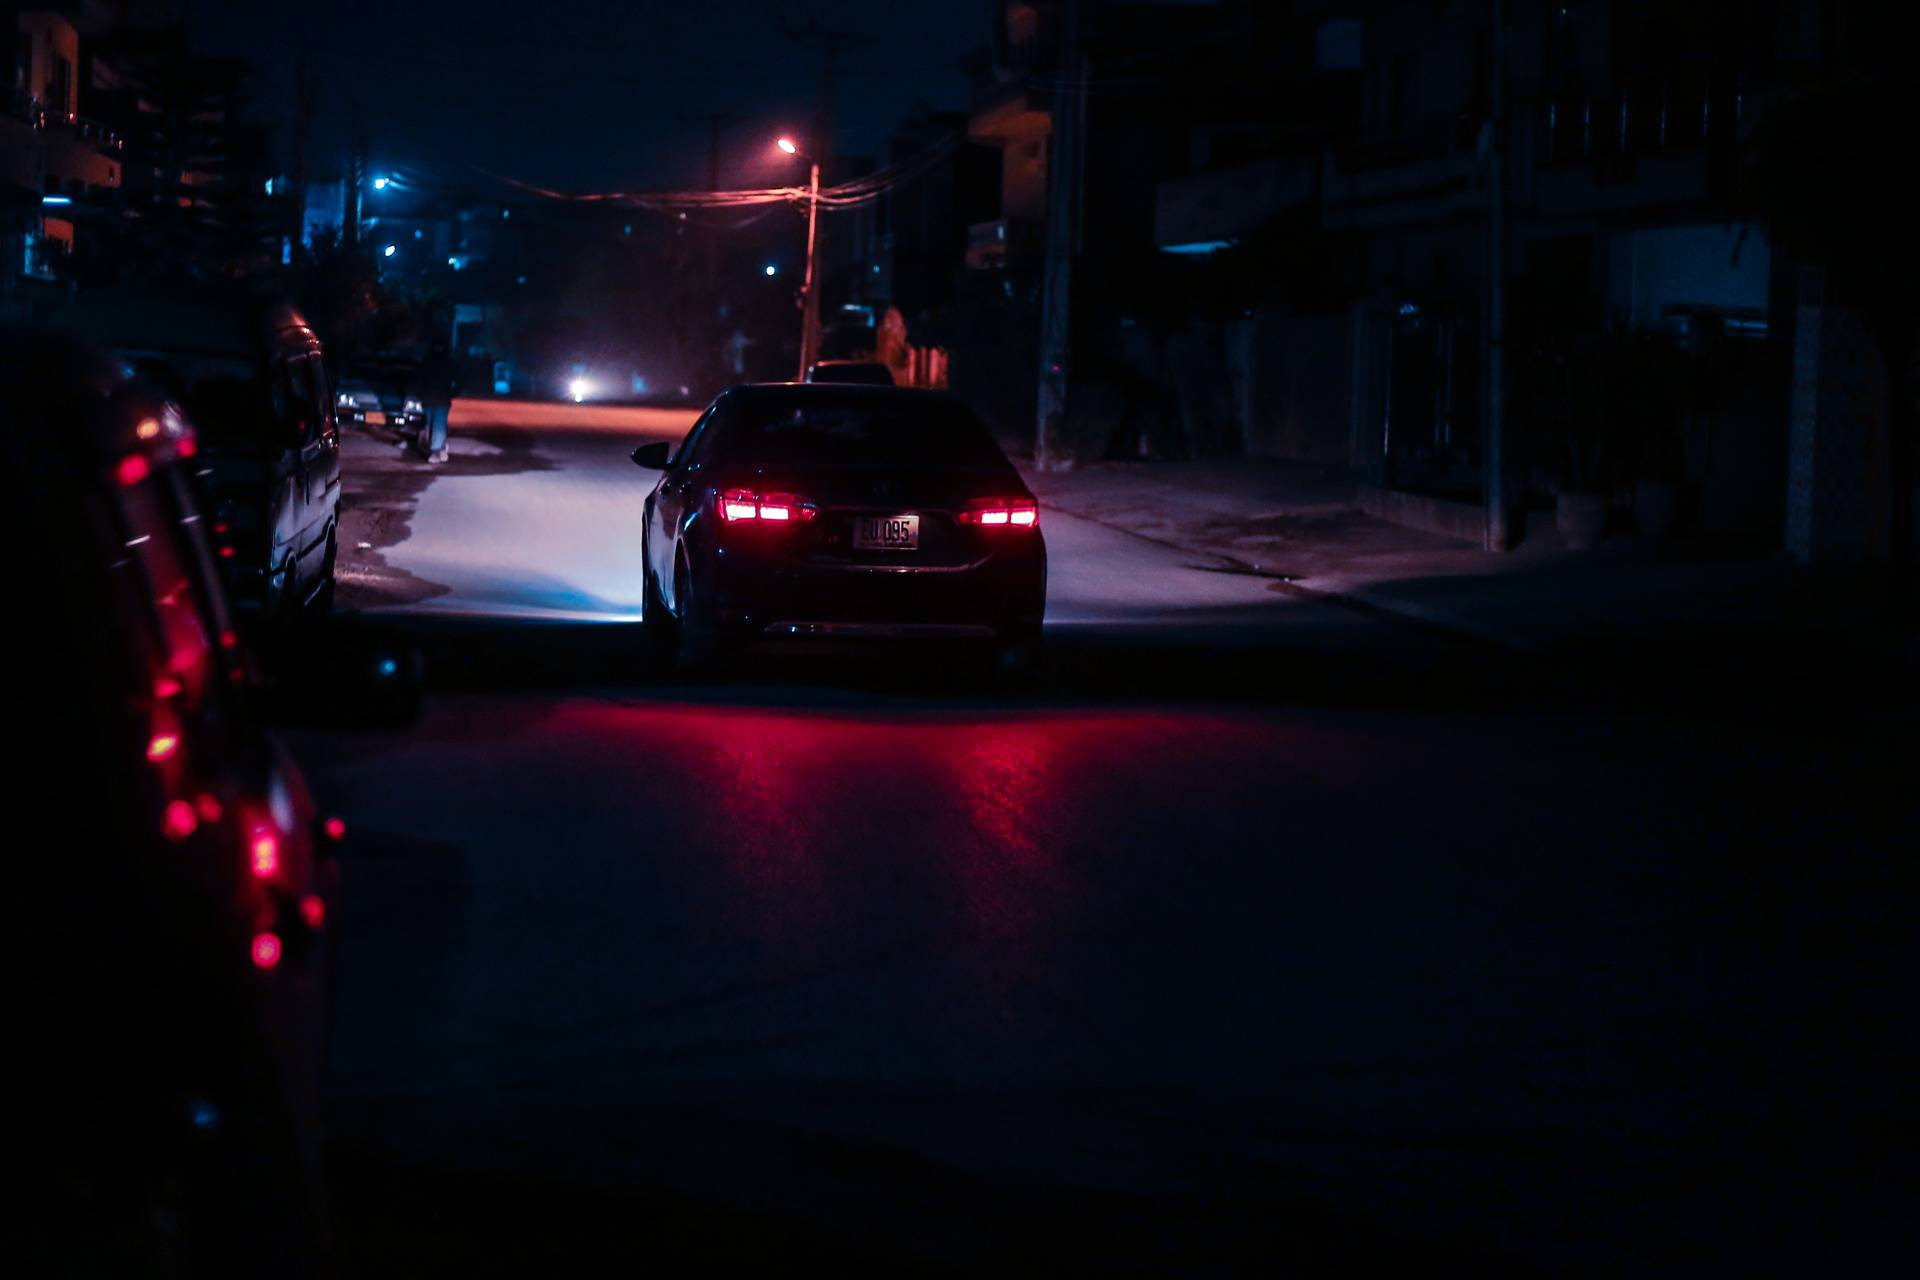 Night car